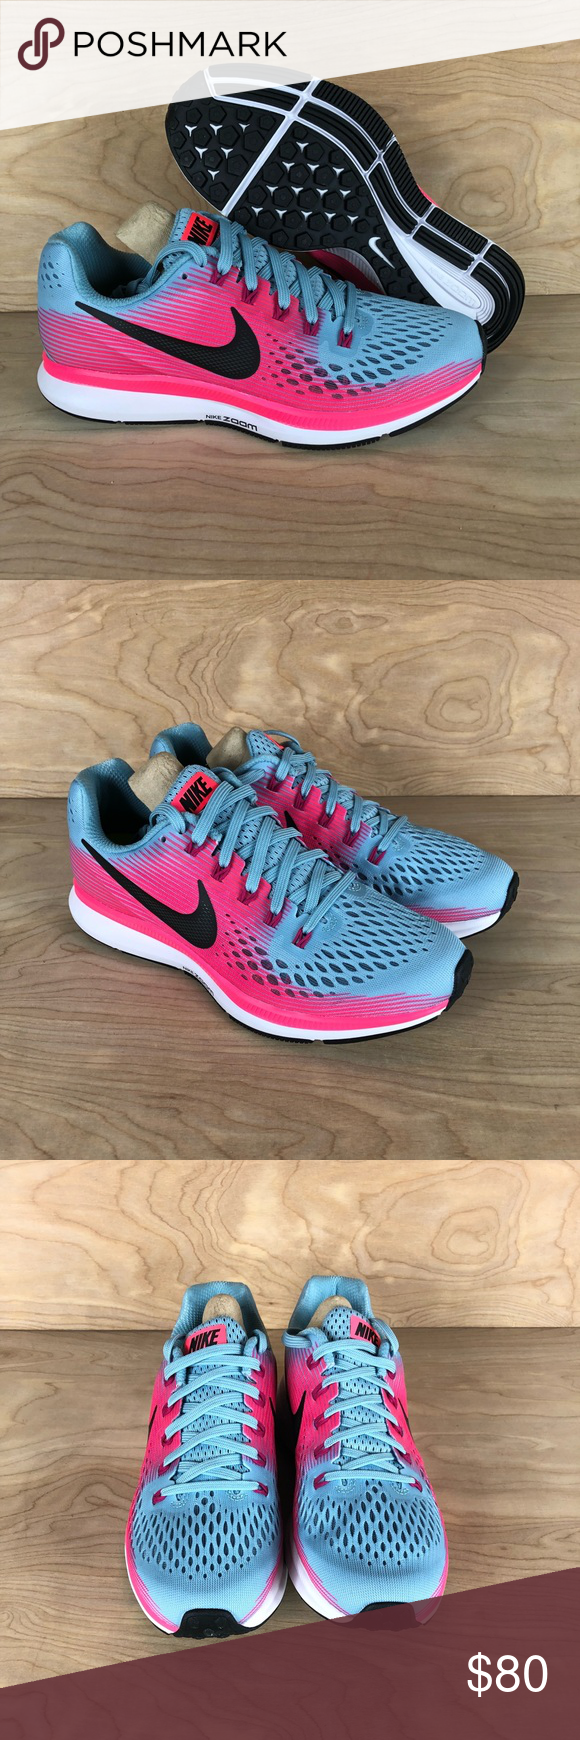 230475d656818 NIKE Air Zoom Pegasus 34 Womens Running Shoes NIKE Air Zoom Pegasus 34  Womens Running Shoes Teal Pink Style Code 880560 406 Multiple Sizes to  Choose From ...